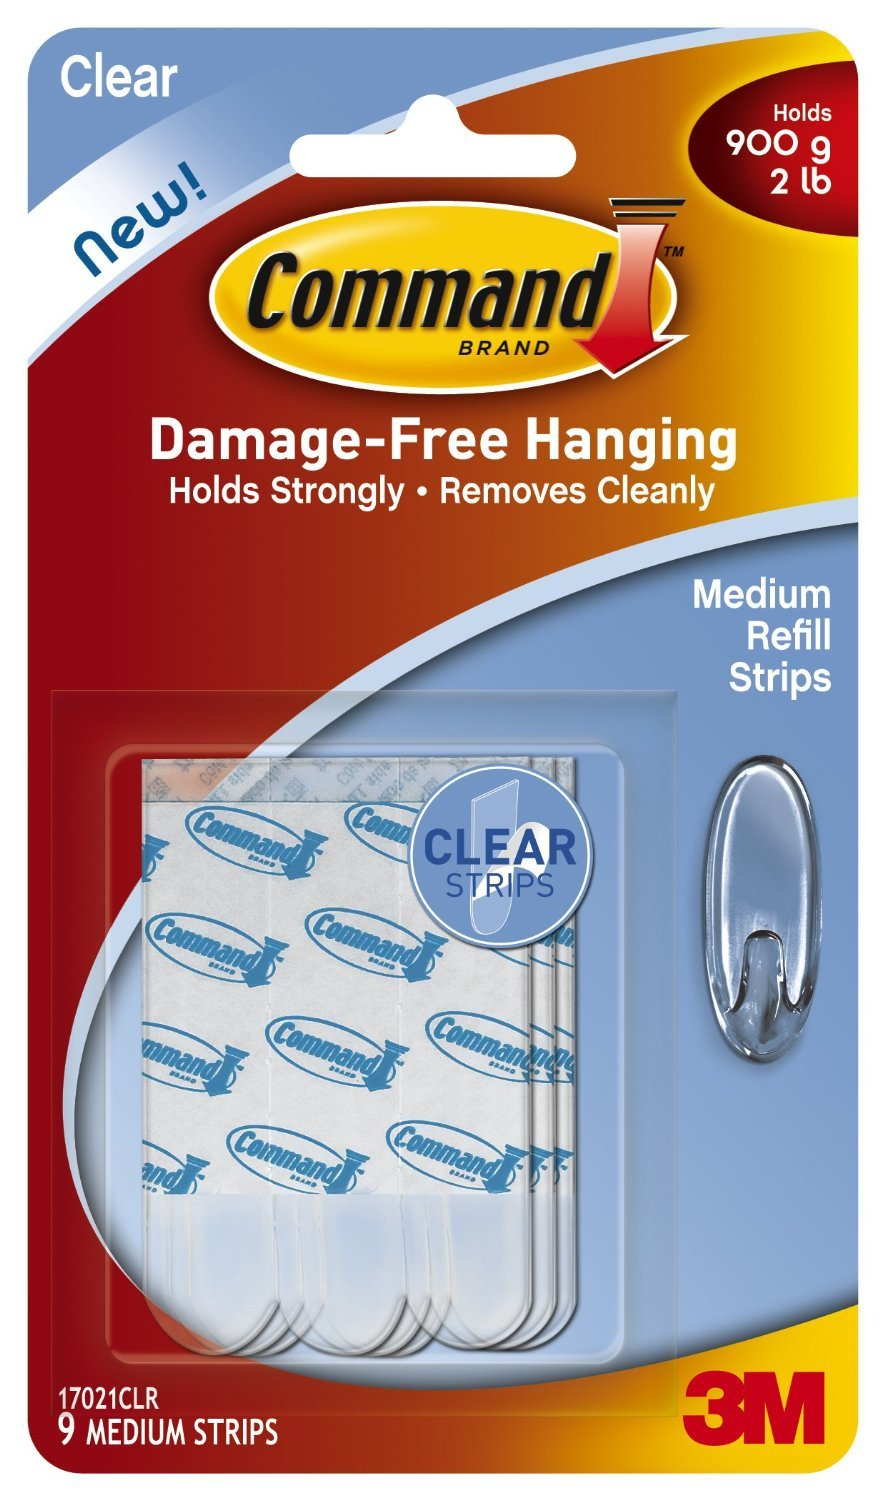 Command Medium Refill Strips, Clear, 9-Strip, 3-PACK